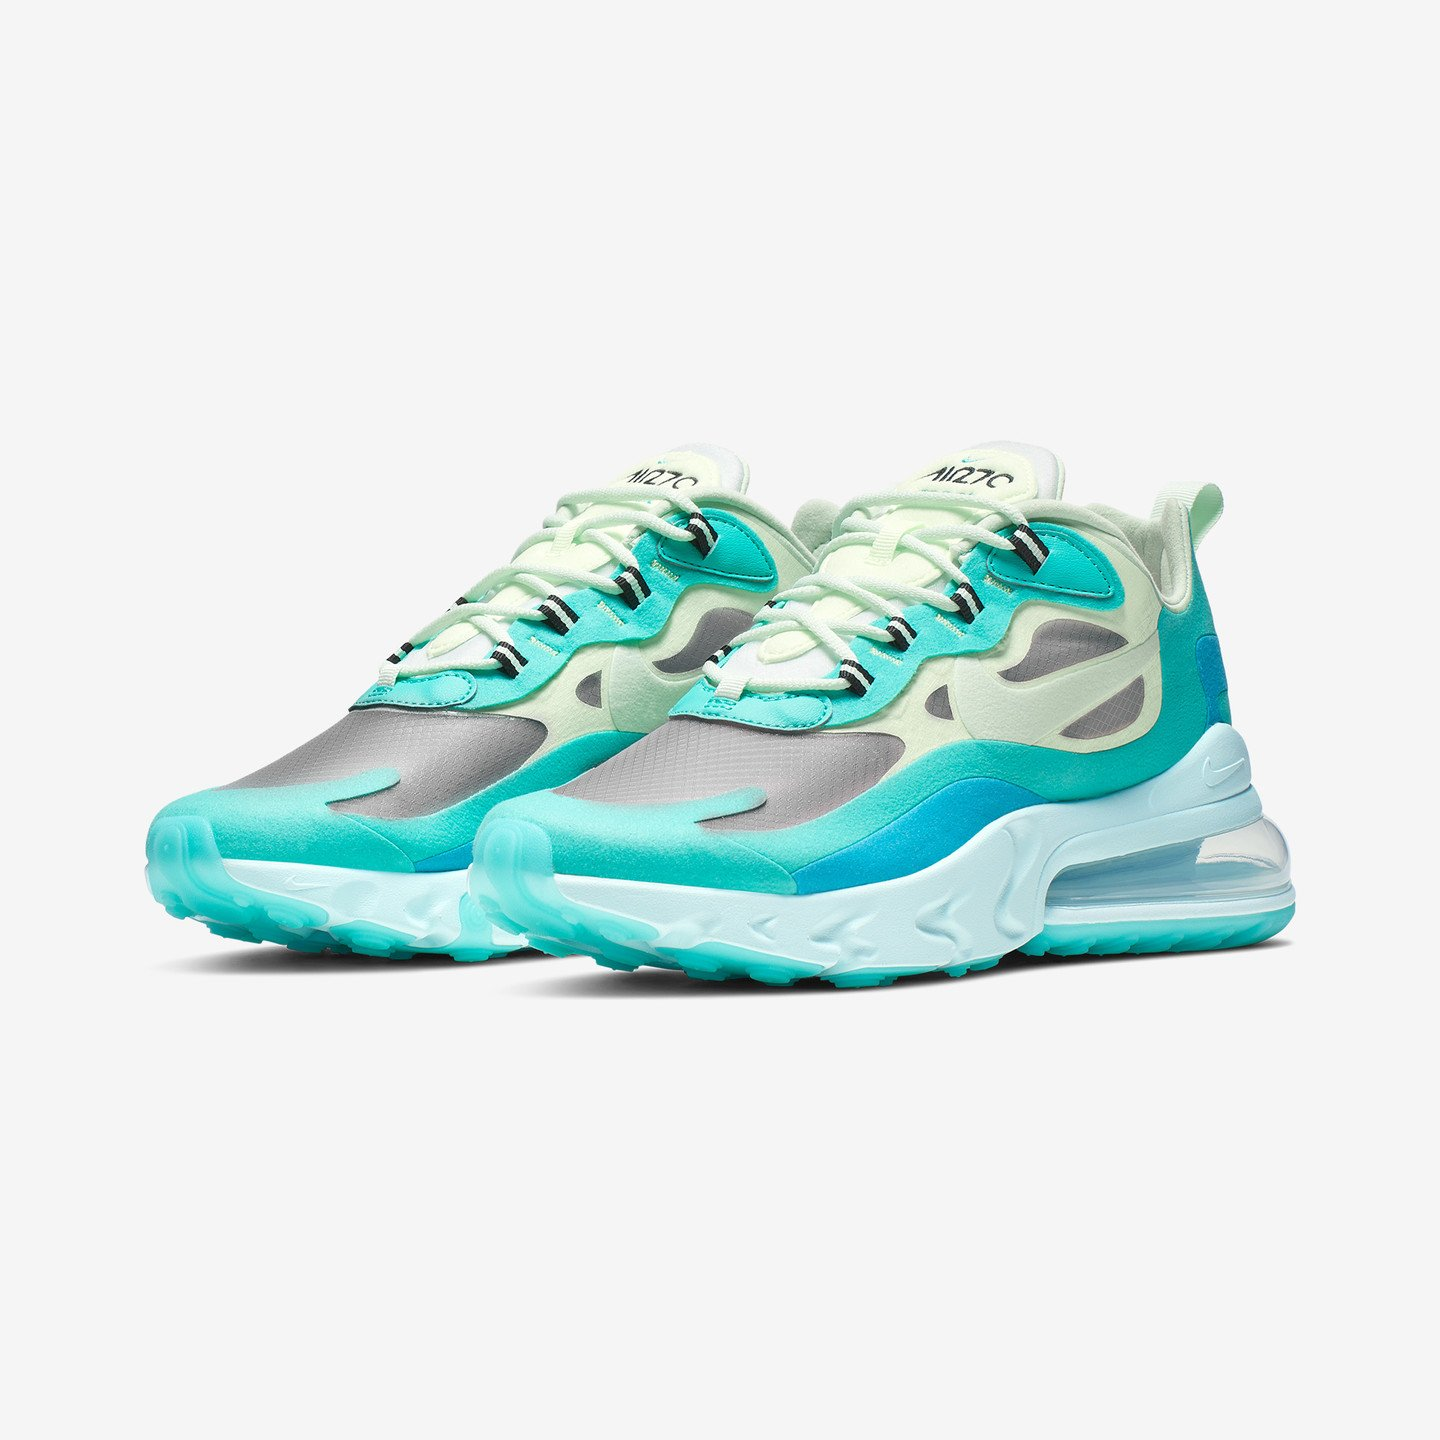 Nike Air Max 270 React Hyper Jade / Frosted Spruce / Barely Volt AO4971-301